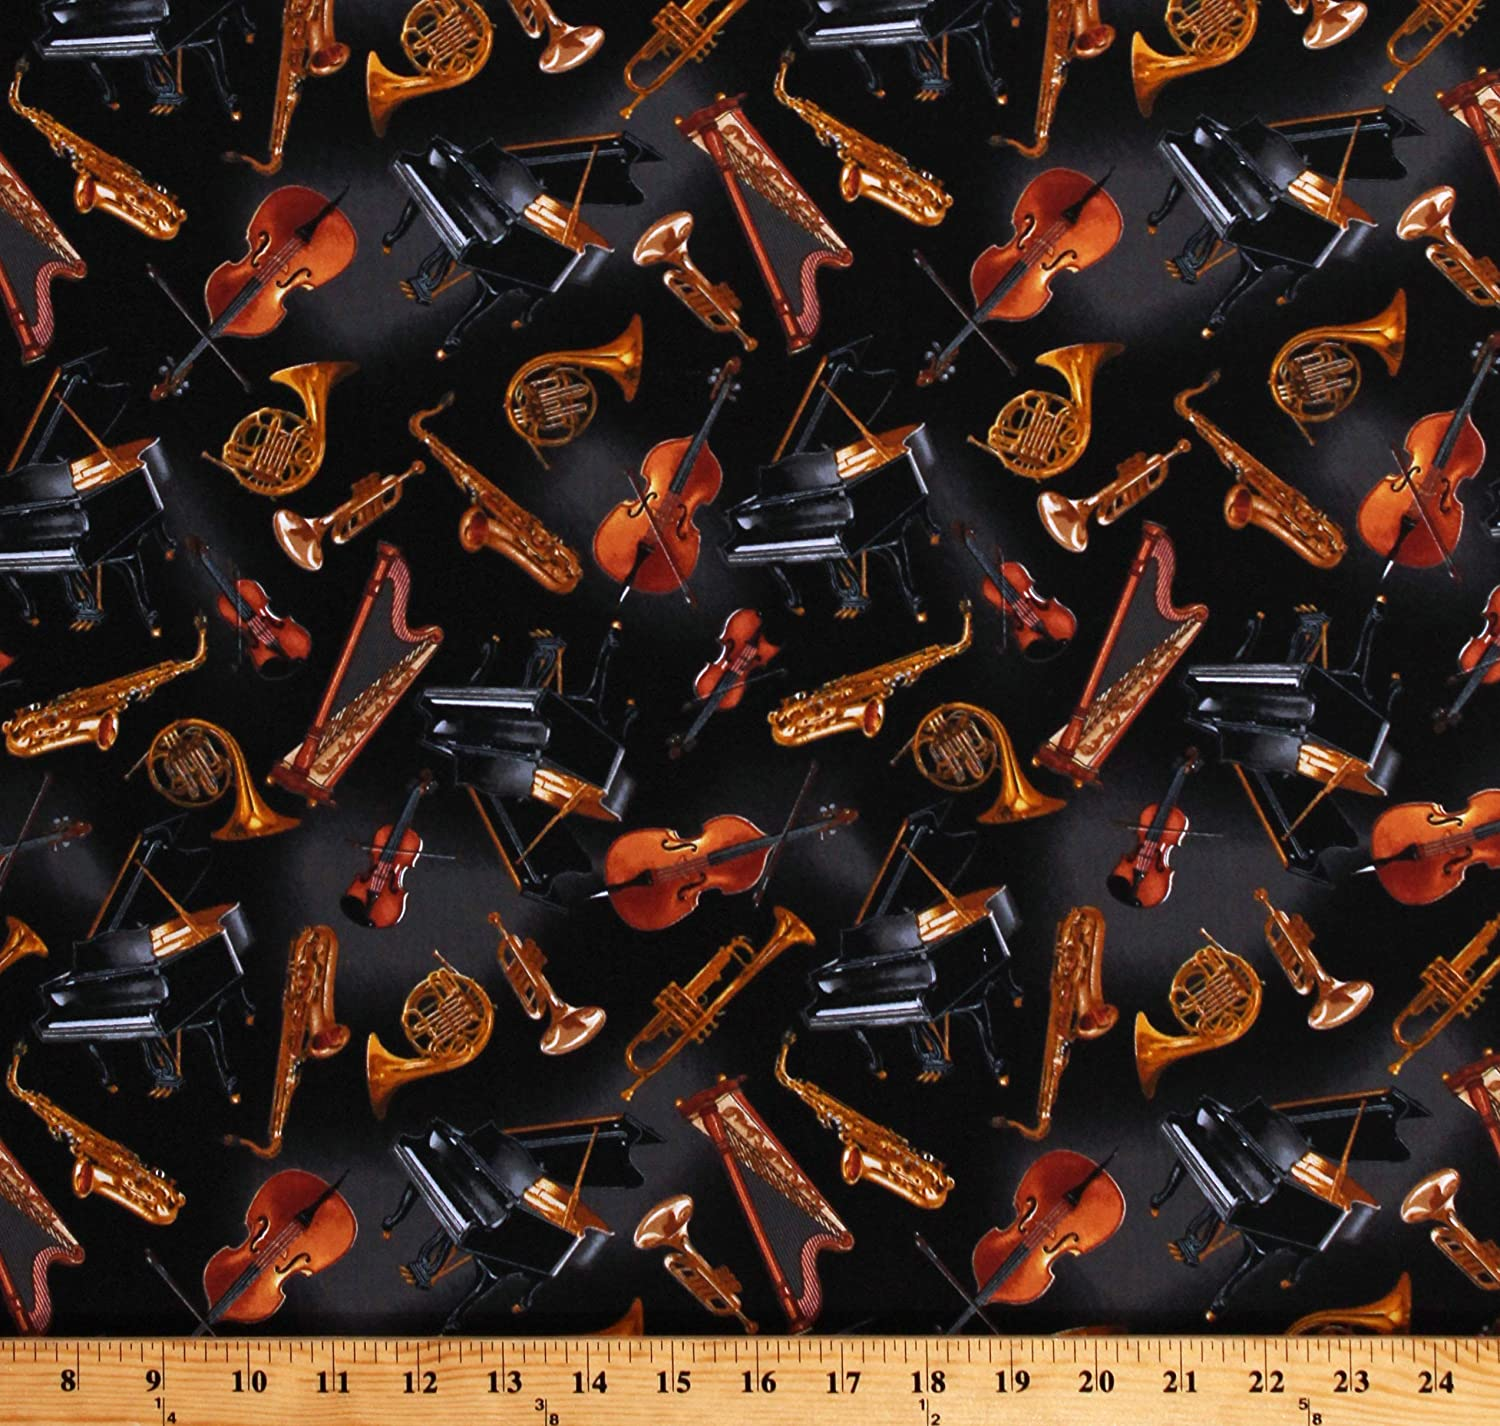 Cotton Musical Instruments Violin Cello Orchestra Black Fabric Print BTY D514.15